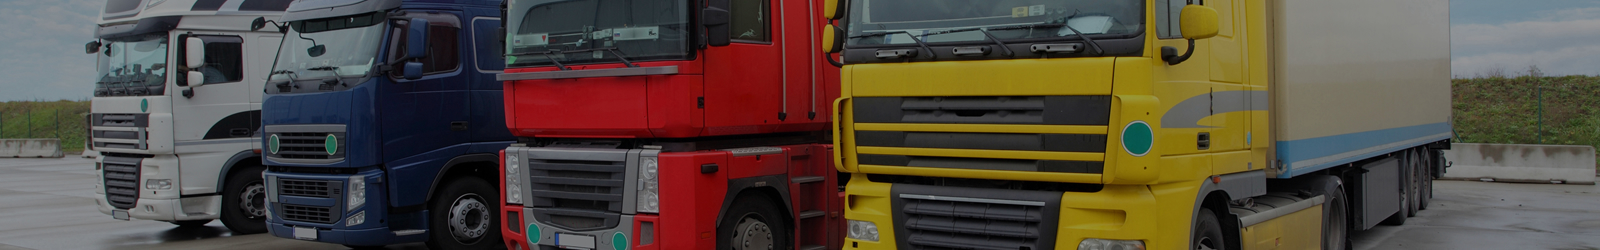 haulage sector banner